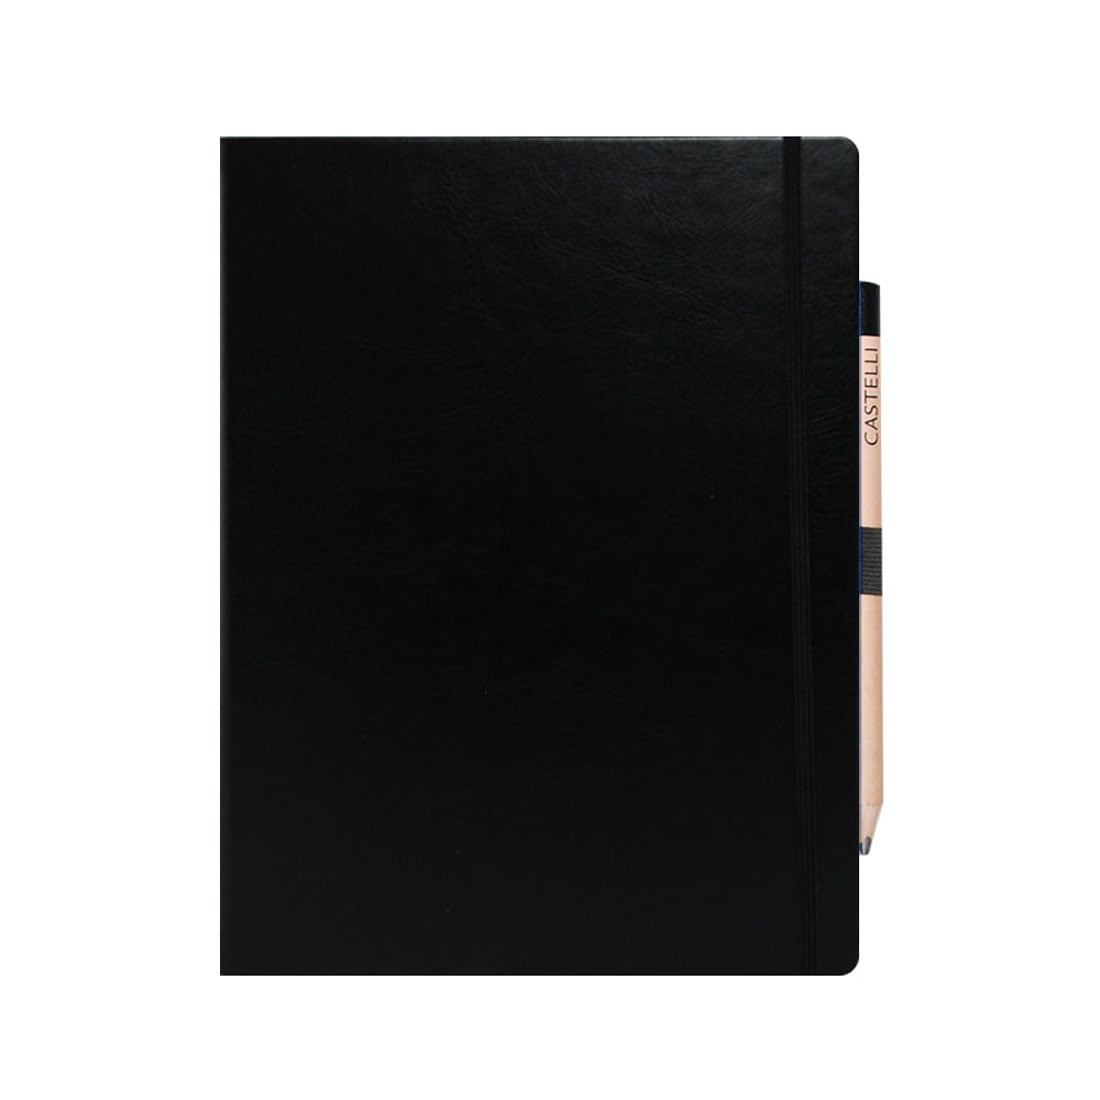 Large notebook with elasticated loop with retro pencil included, rounded corners, internal document pocket.